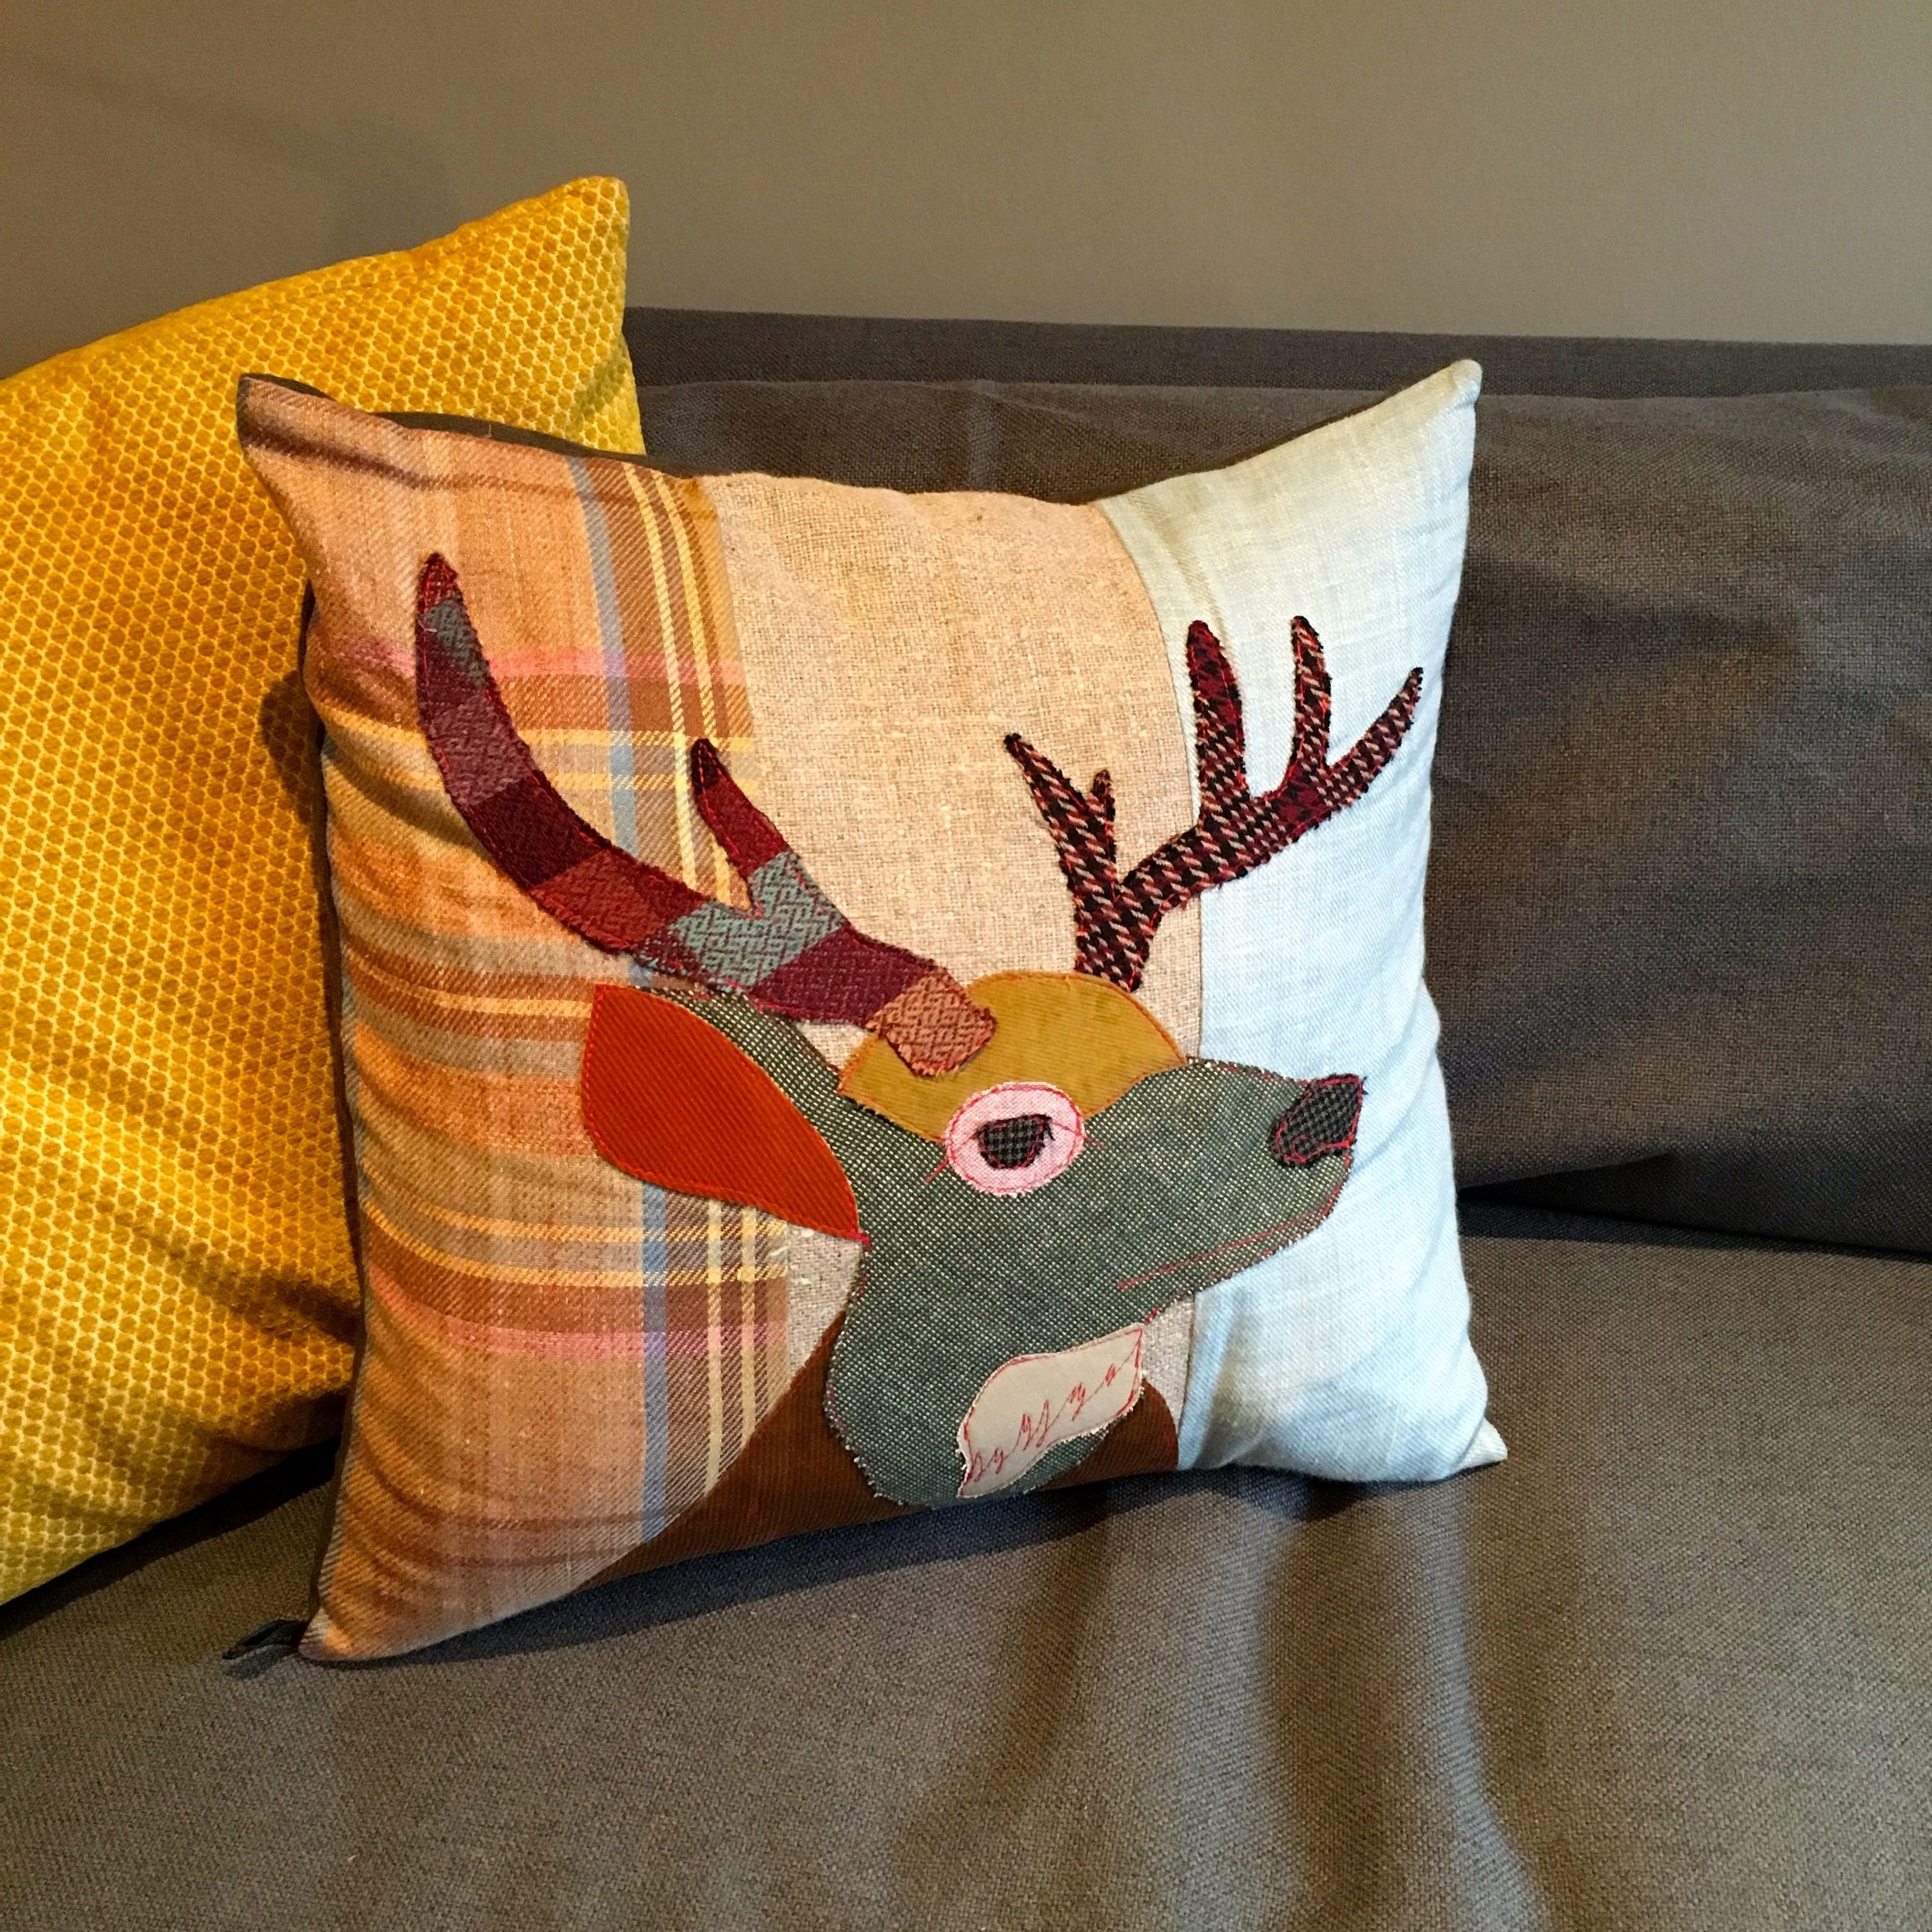 A stag cushion for me